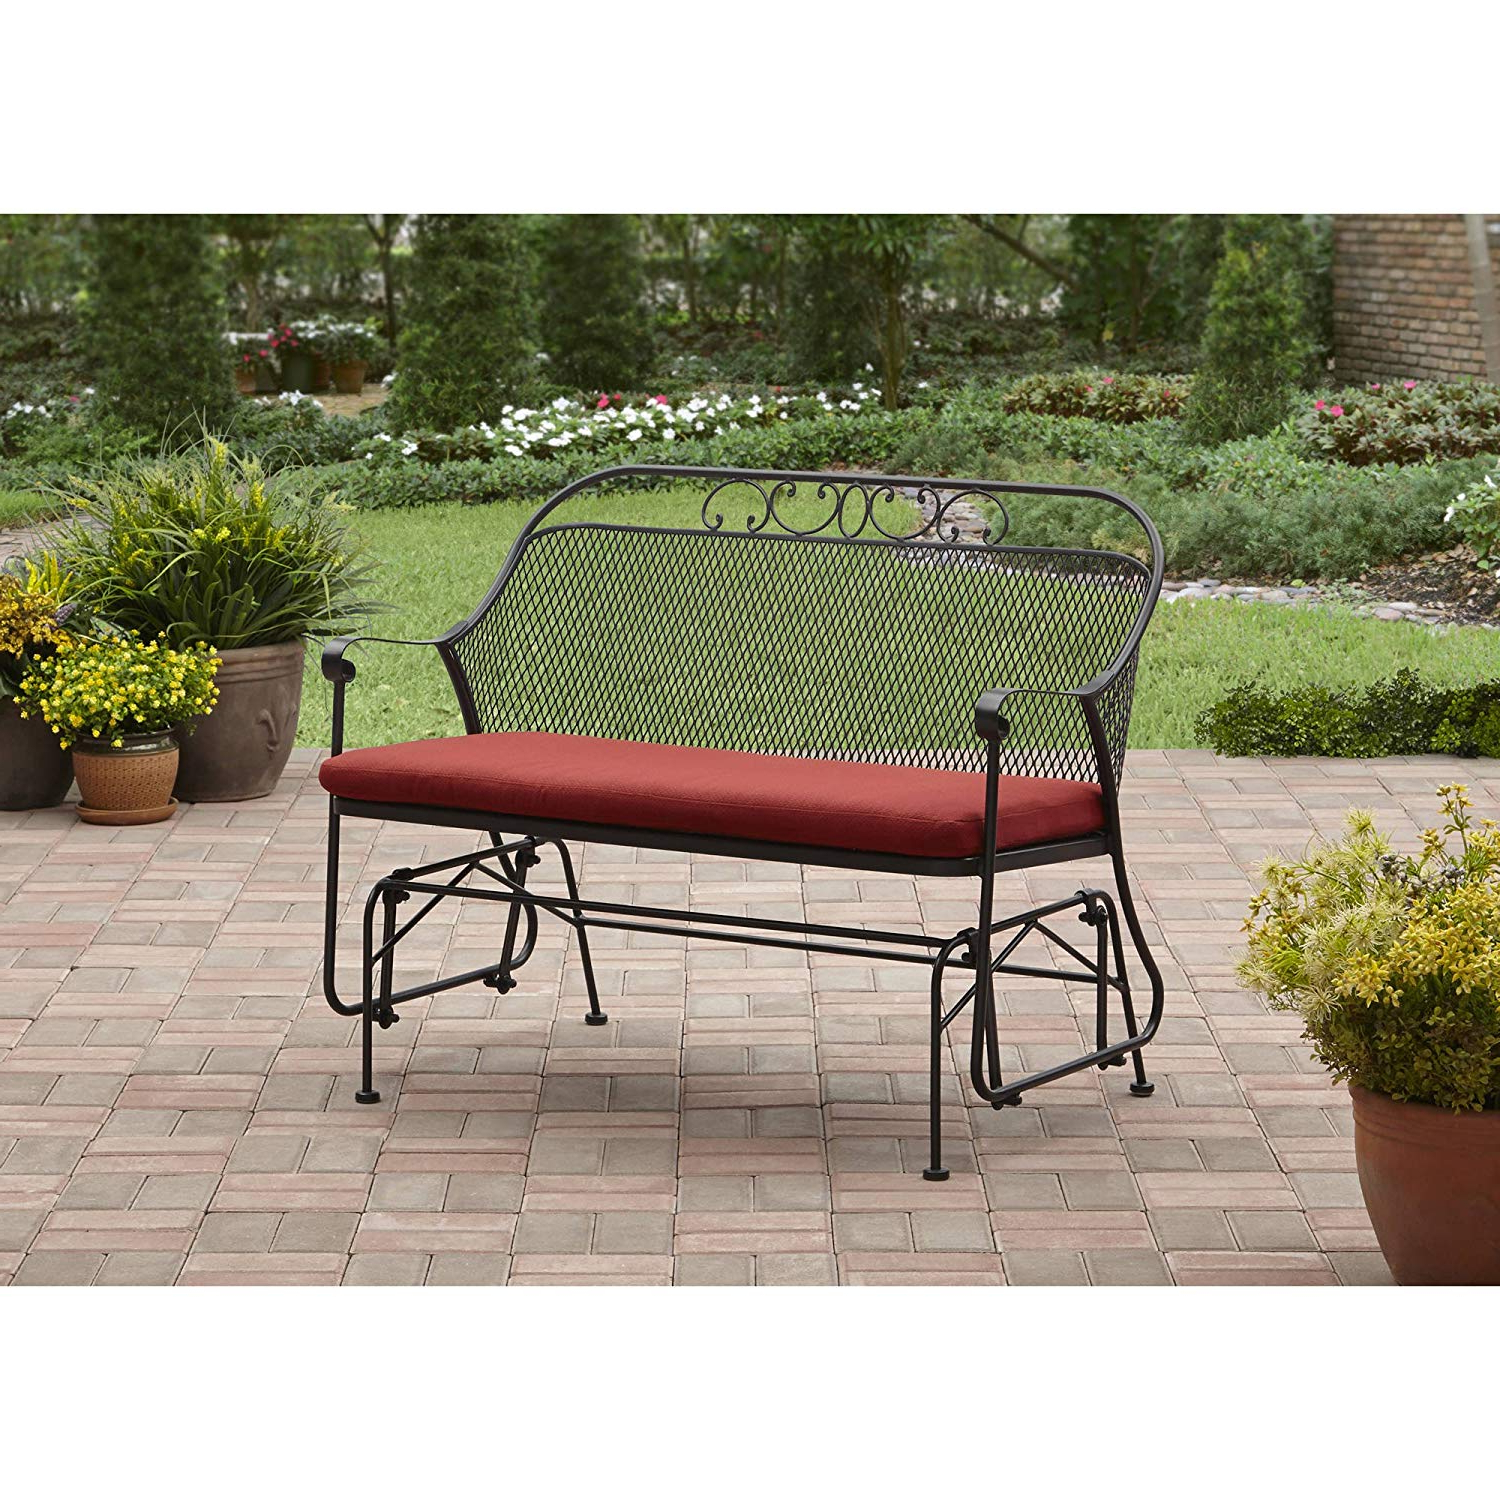 Glider Benches With Cushion Throughout Newest Cheap Outdoor Cushion Fabric Water Resistant, Find Outdoor (View 17 of 30)